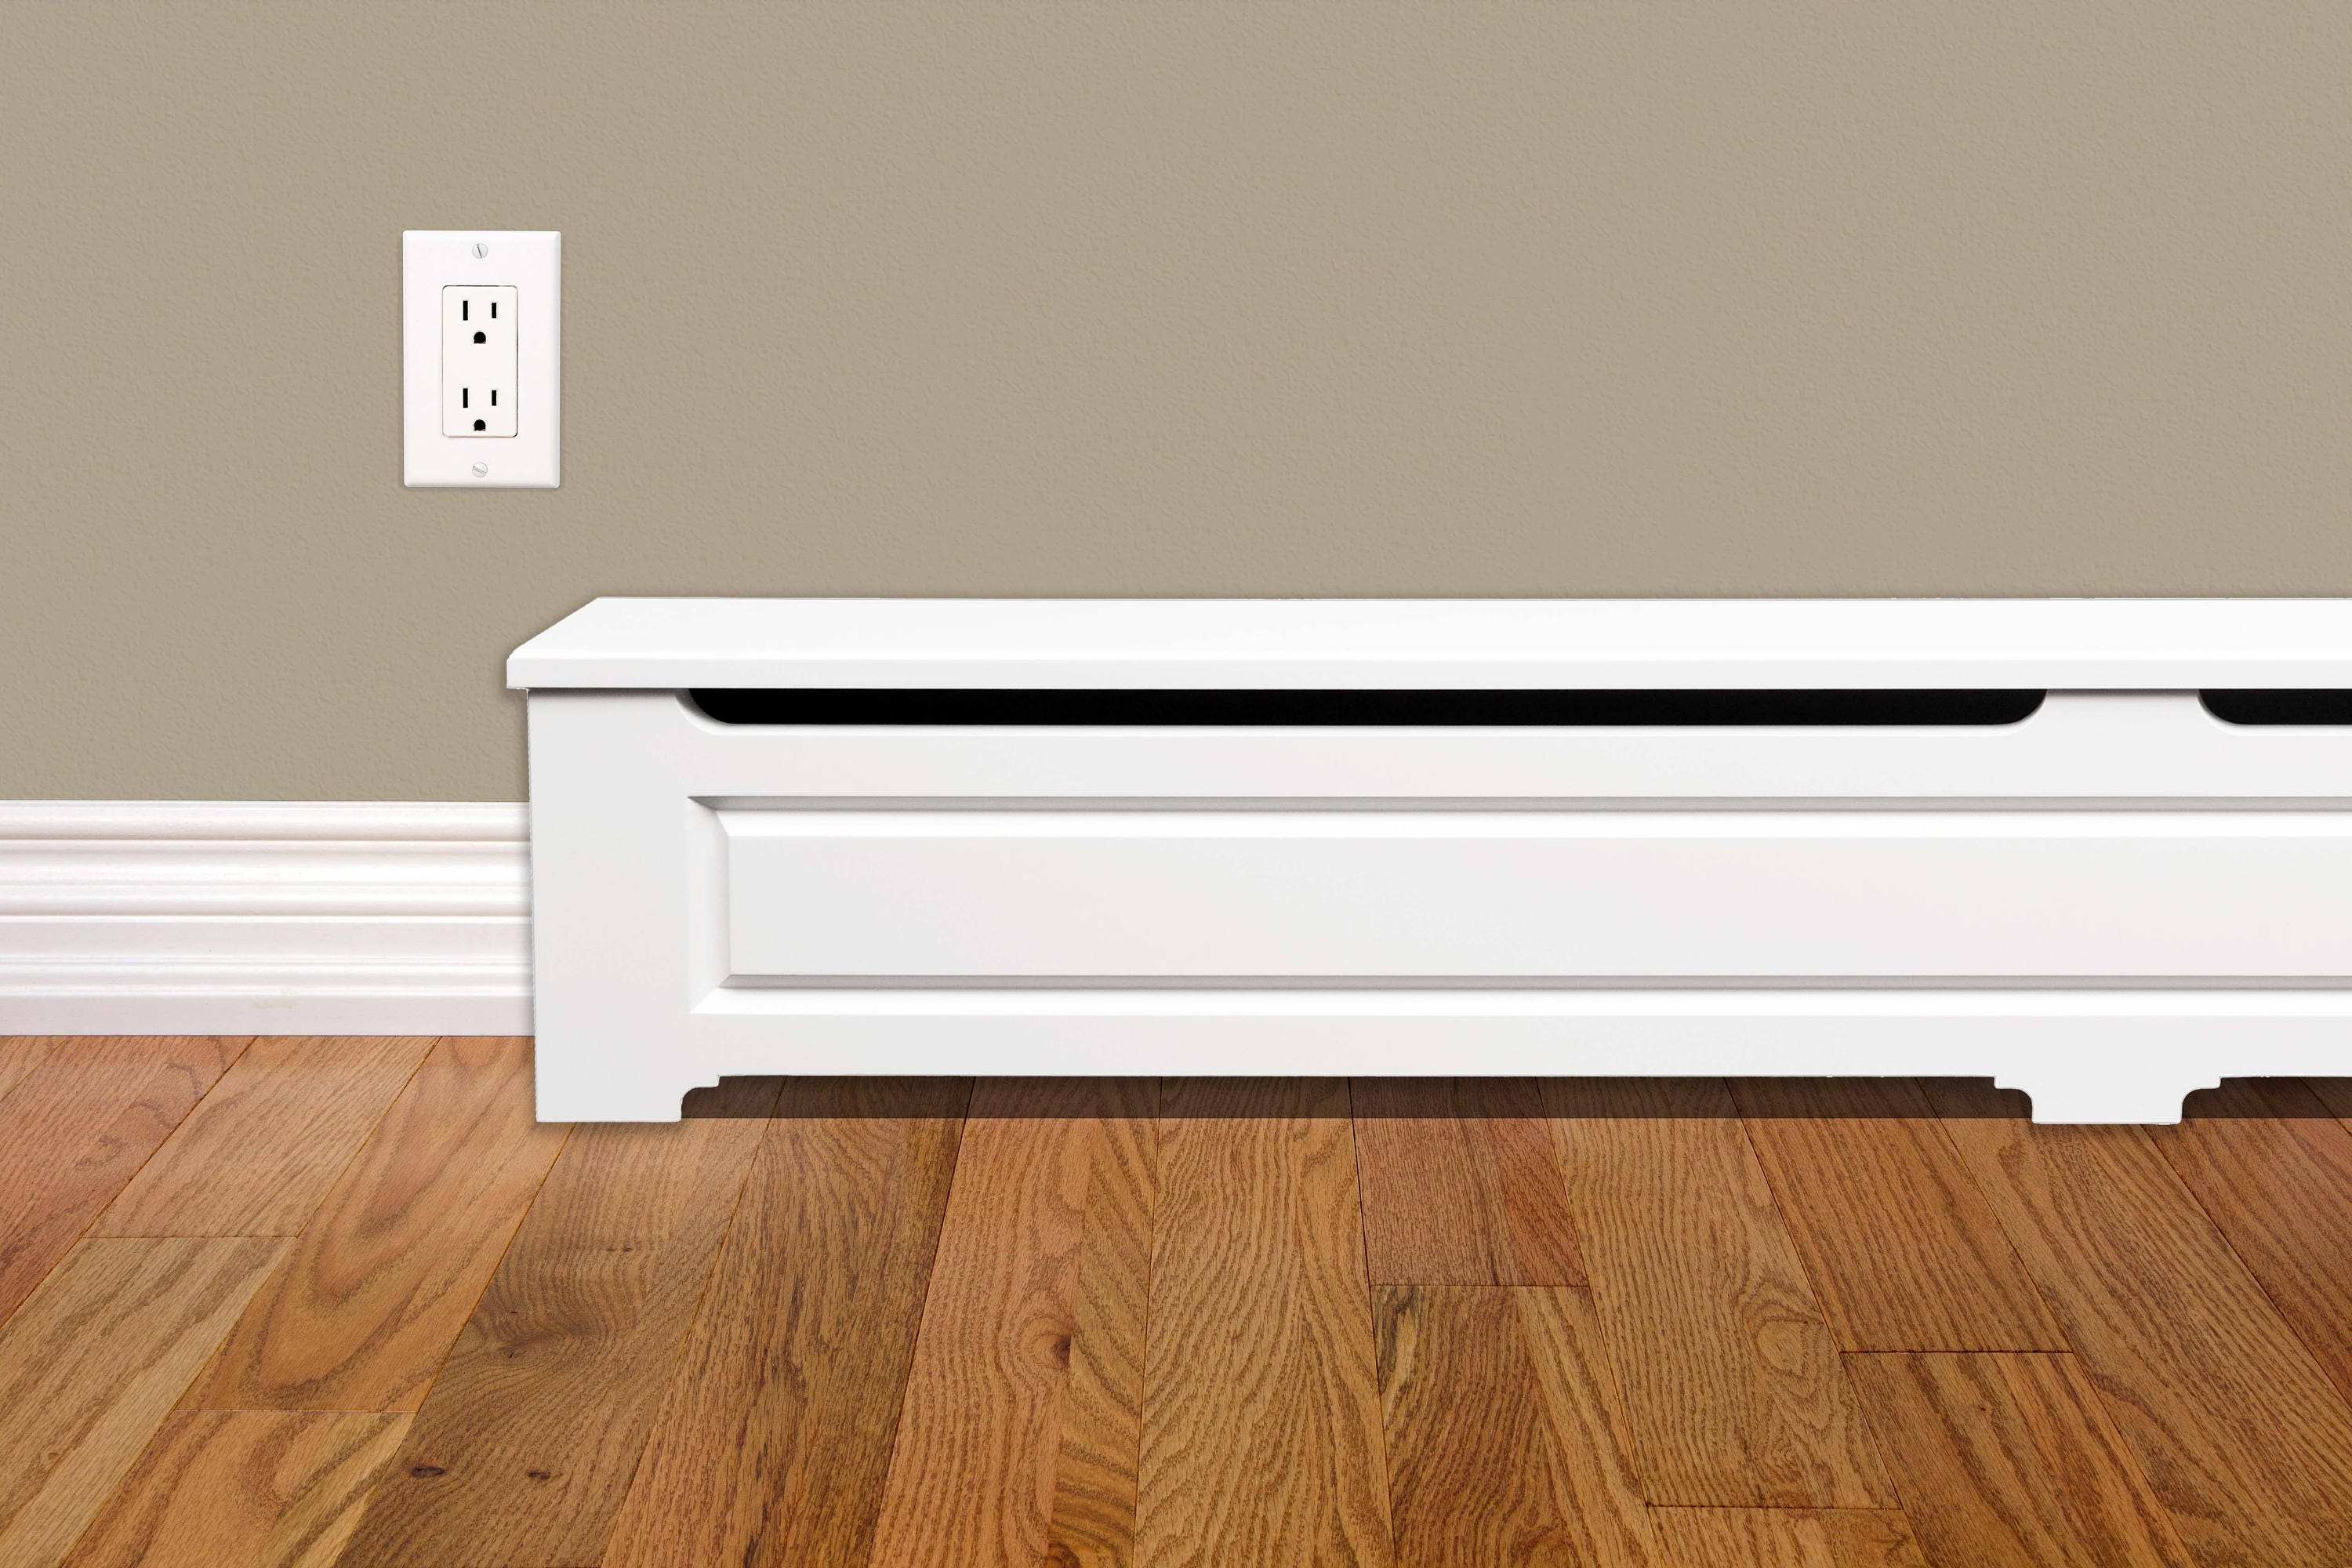 Craftsman Style 5 Ft Wood Baseboard Heater Cover Kit In White